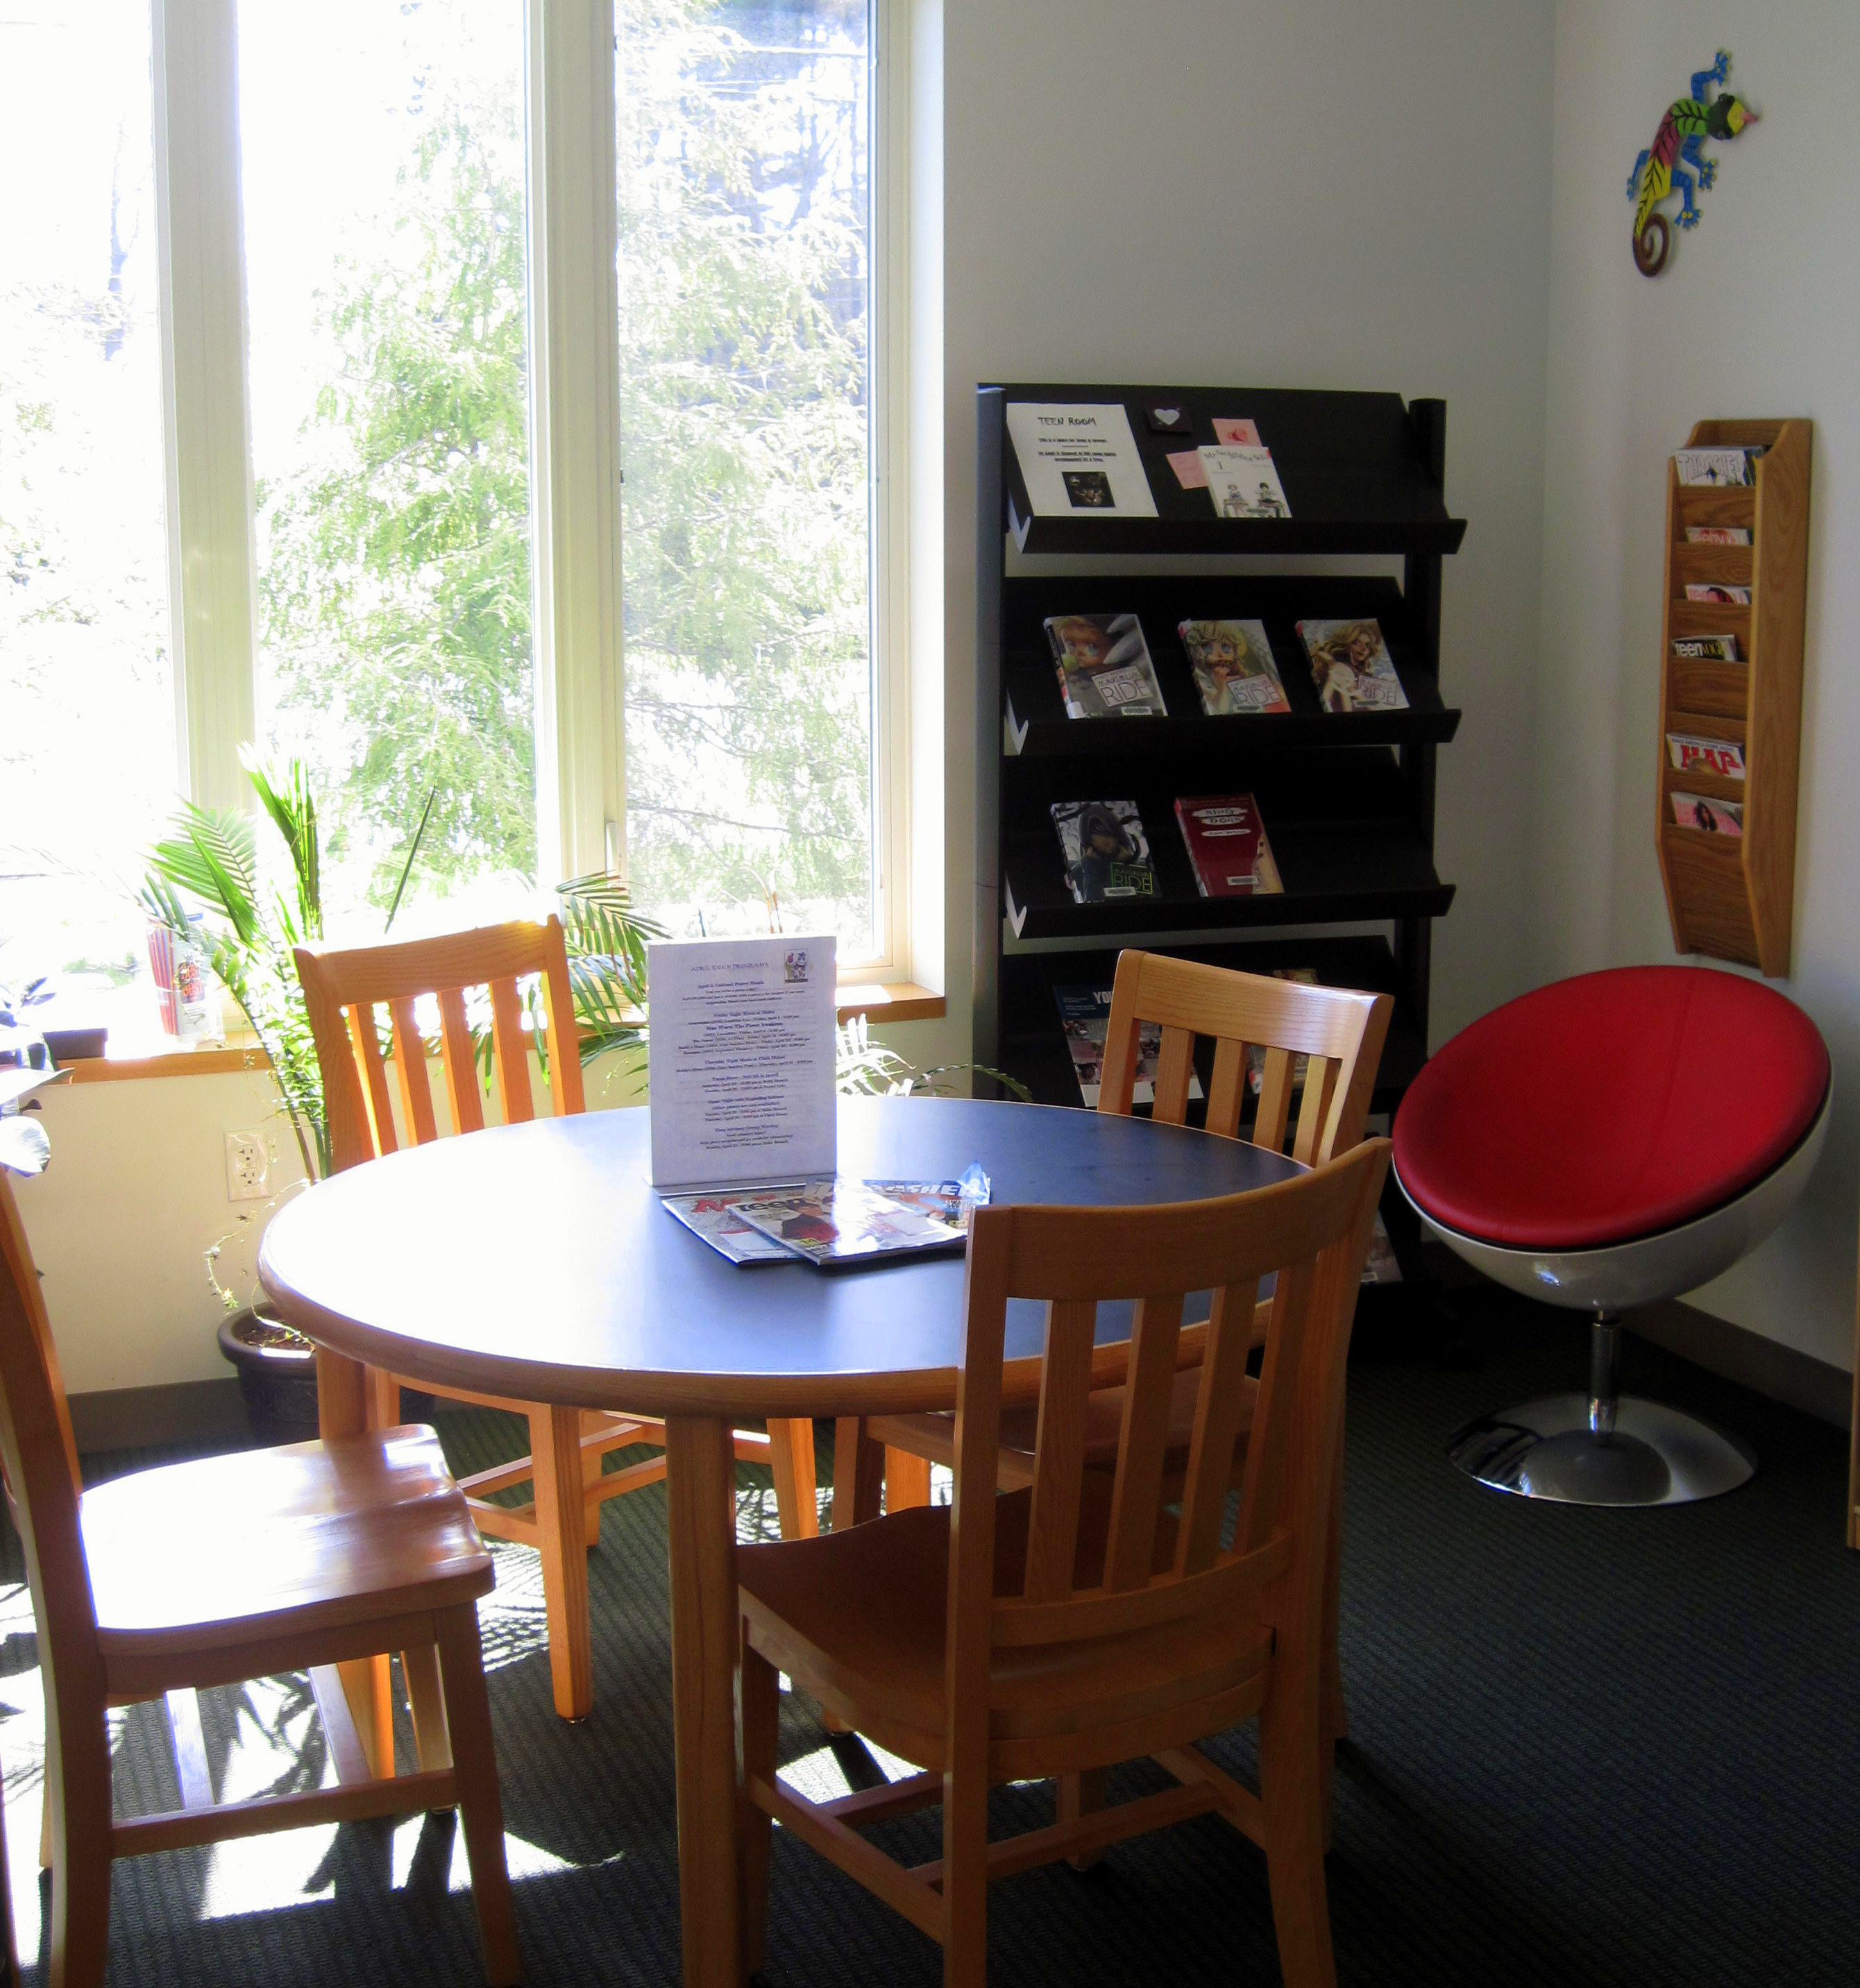 Malta Teen Room With Study Table And Display Rack Of New Young Adult Books